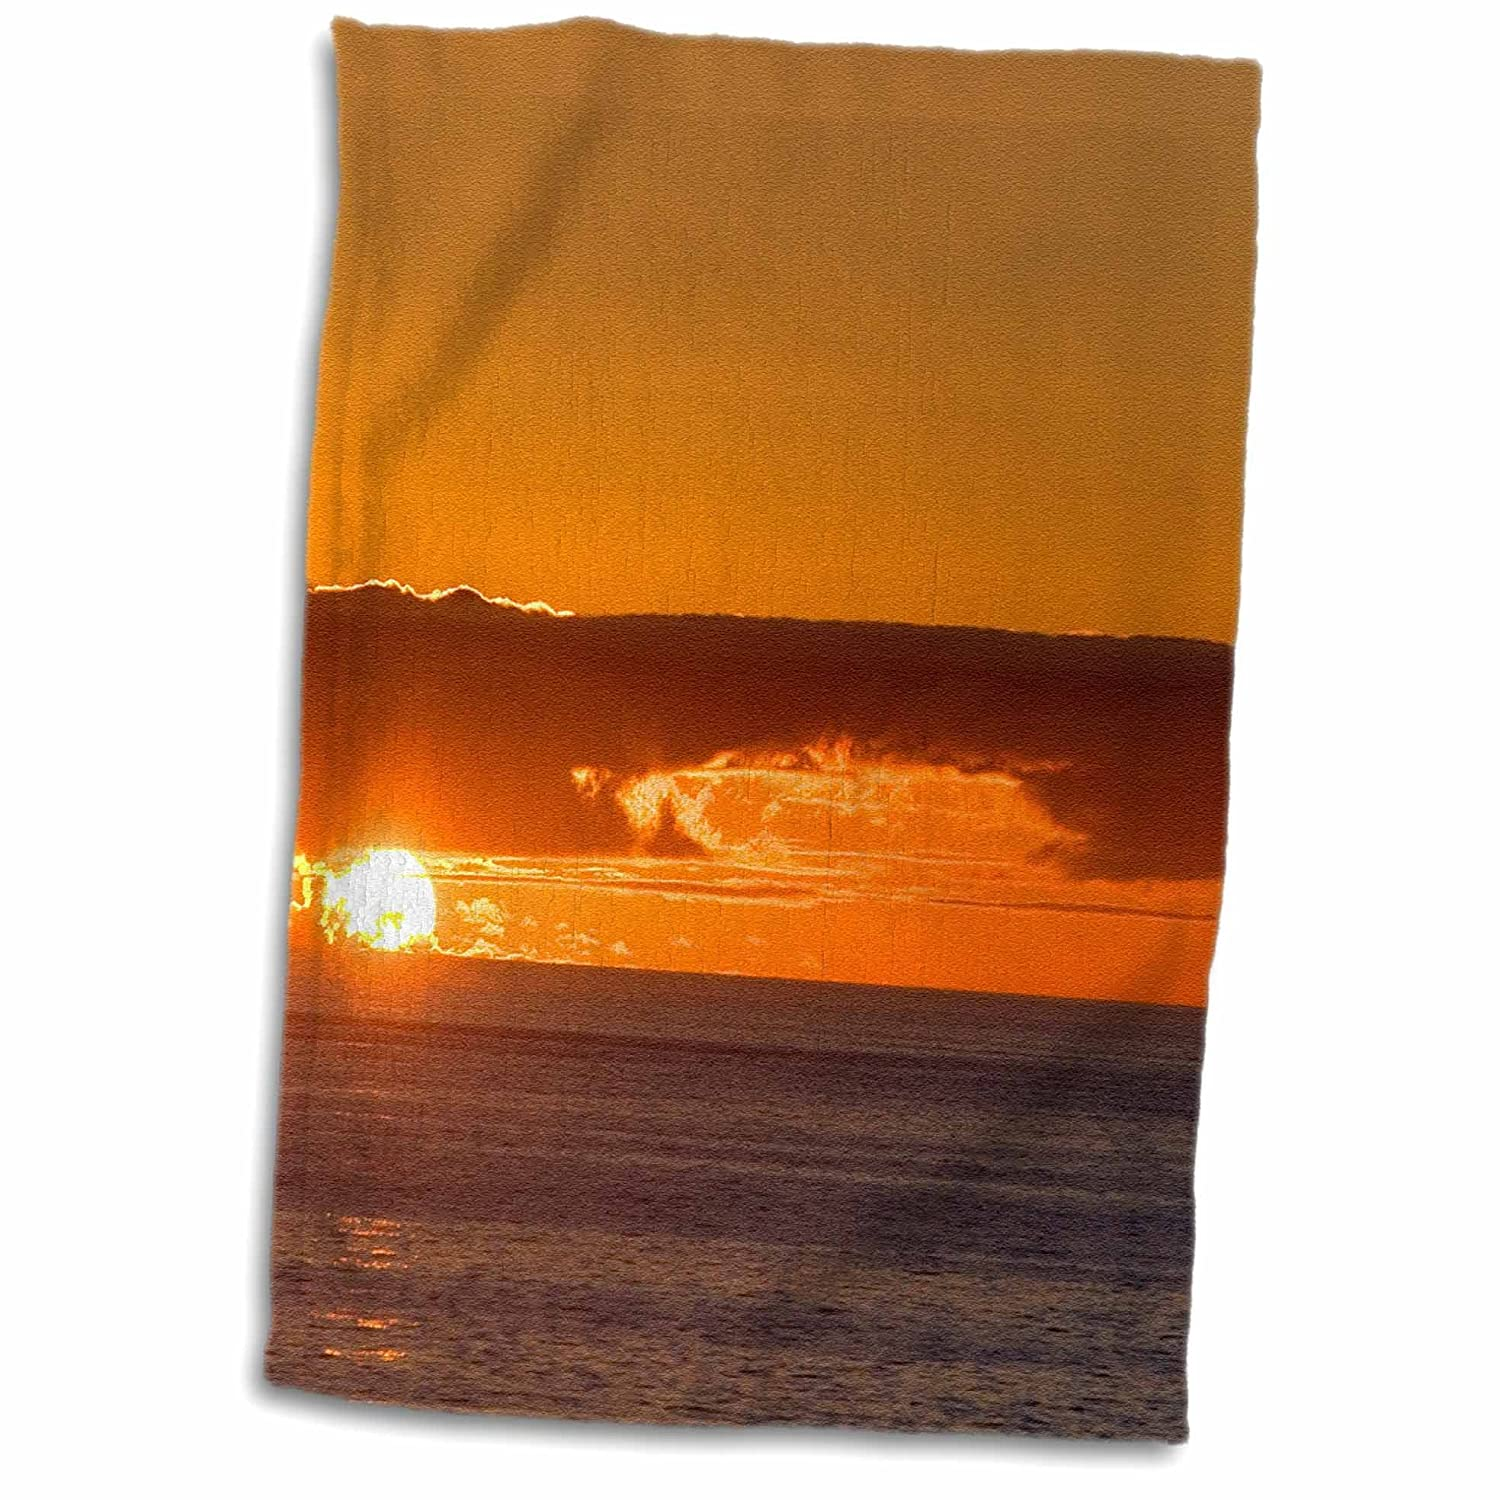 Frazier Hand//Sports Towel 15 x 22 3D Rose Sunset On Pacific Ocean-Valparaiso-Chile-Sa05 Dfr0091-David R